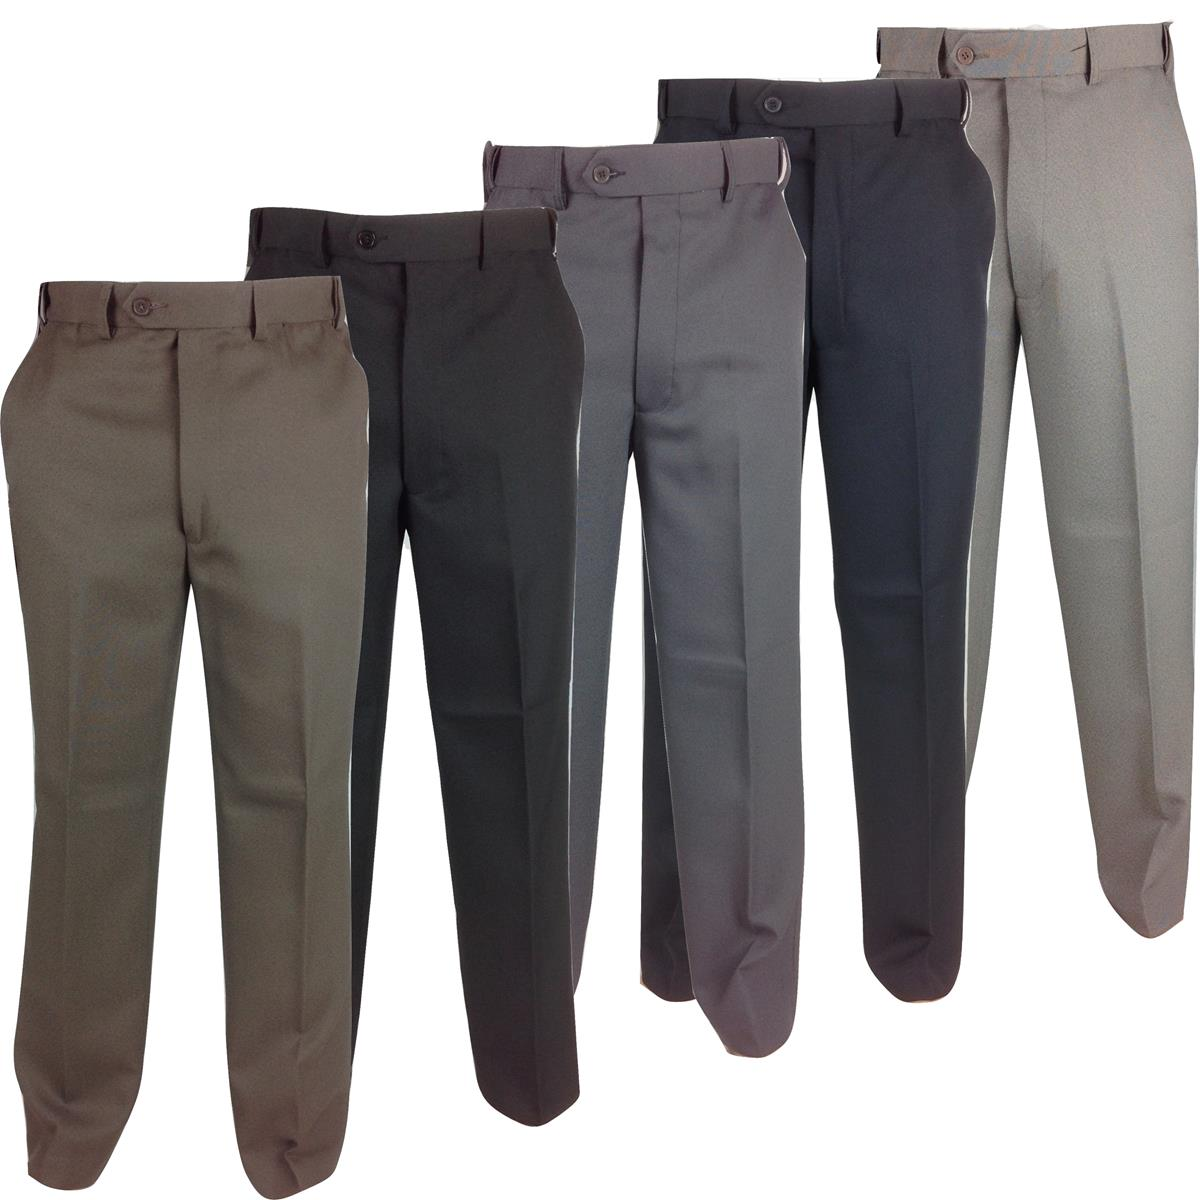 Mens Self Expanding Waist Trousers Comfort Fit W 32 56